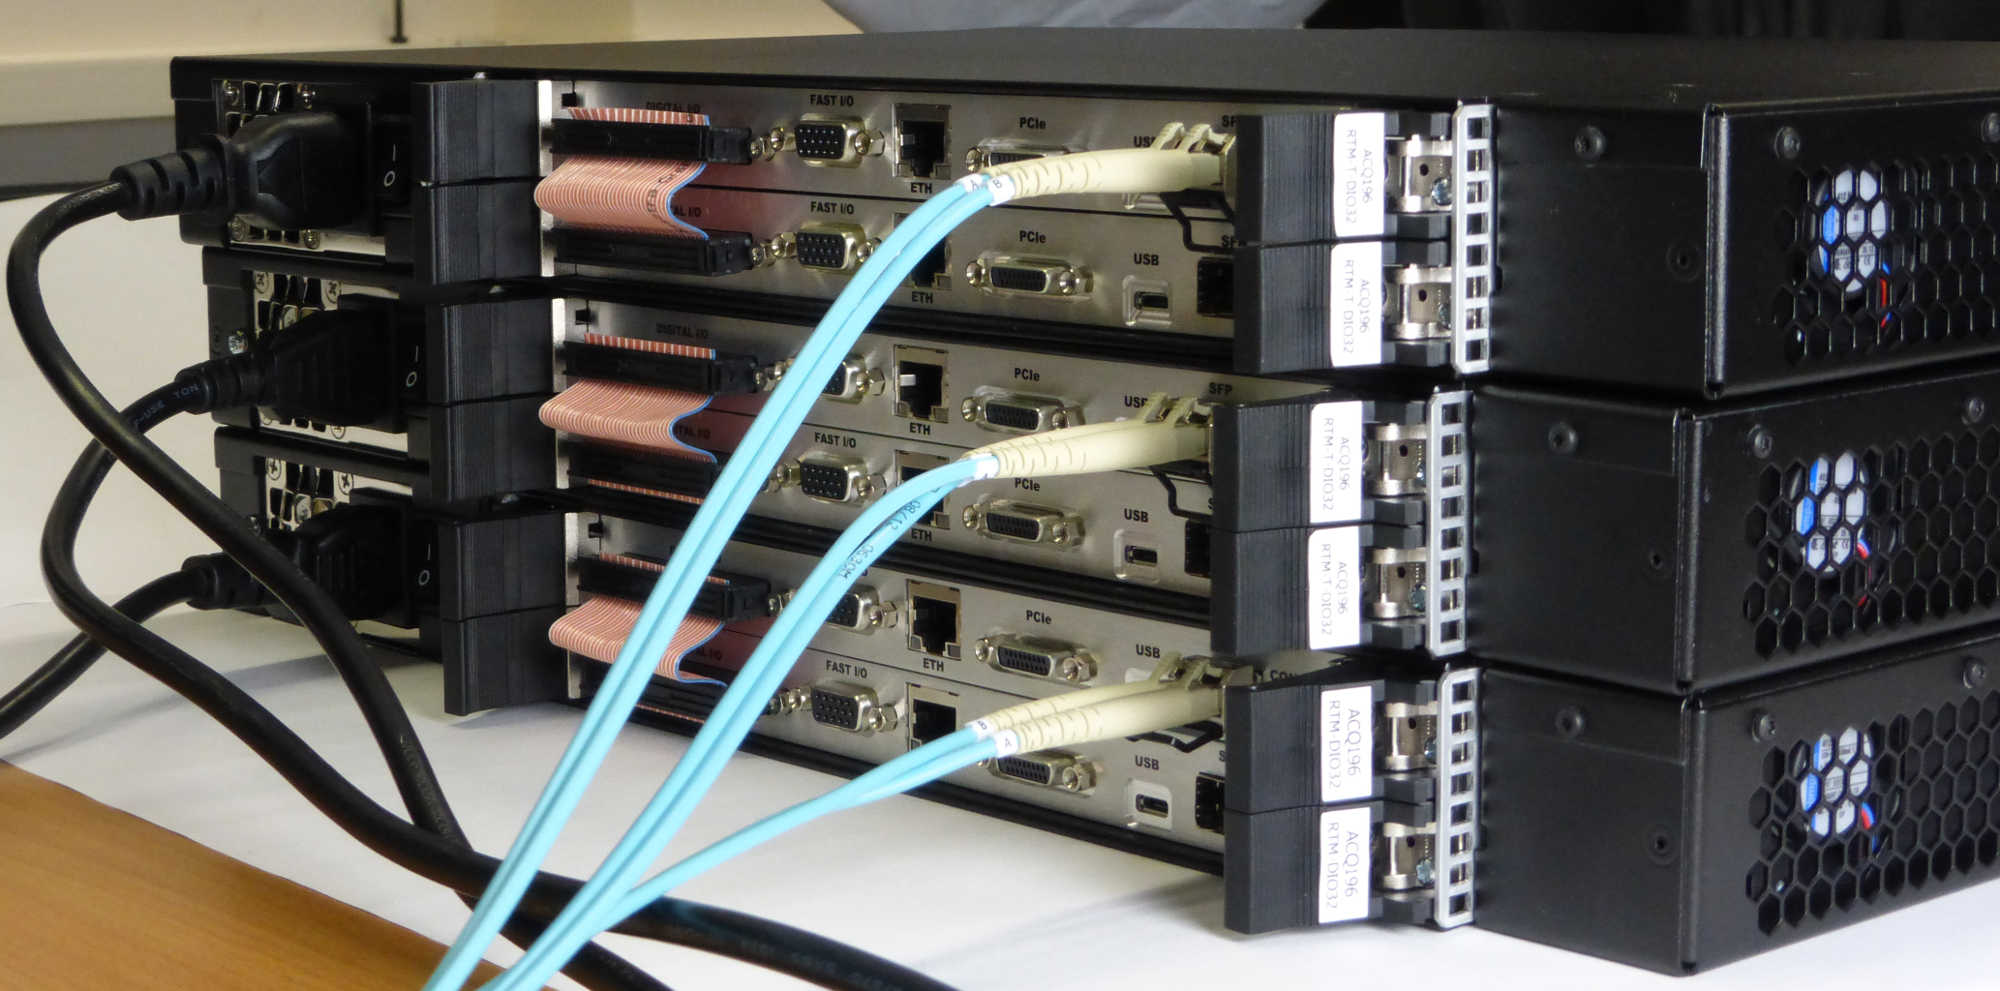 AO32CPCI/RTM-T Rear View showing fiber optic cable, one per card pair